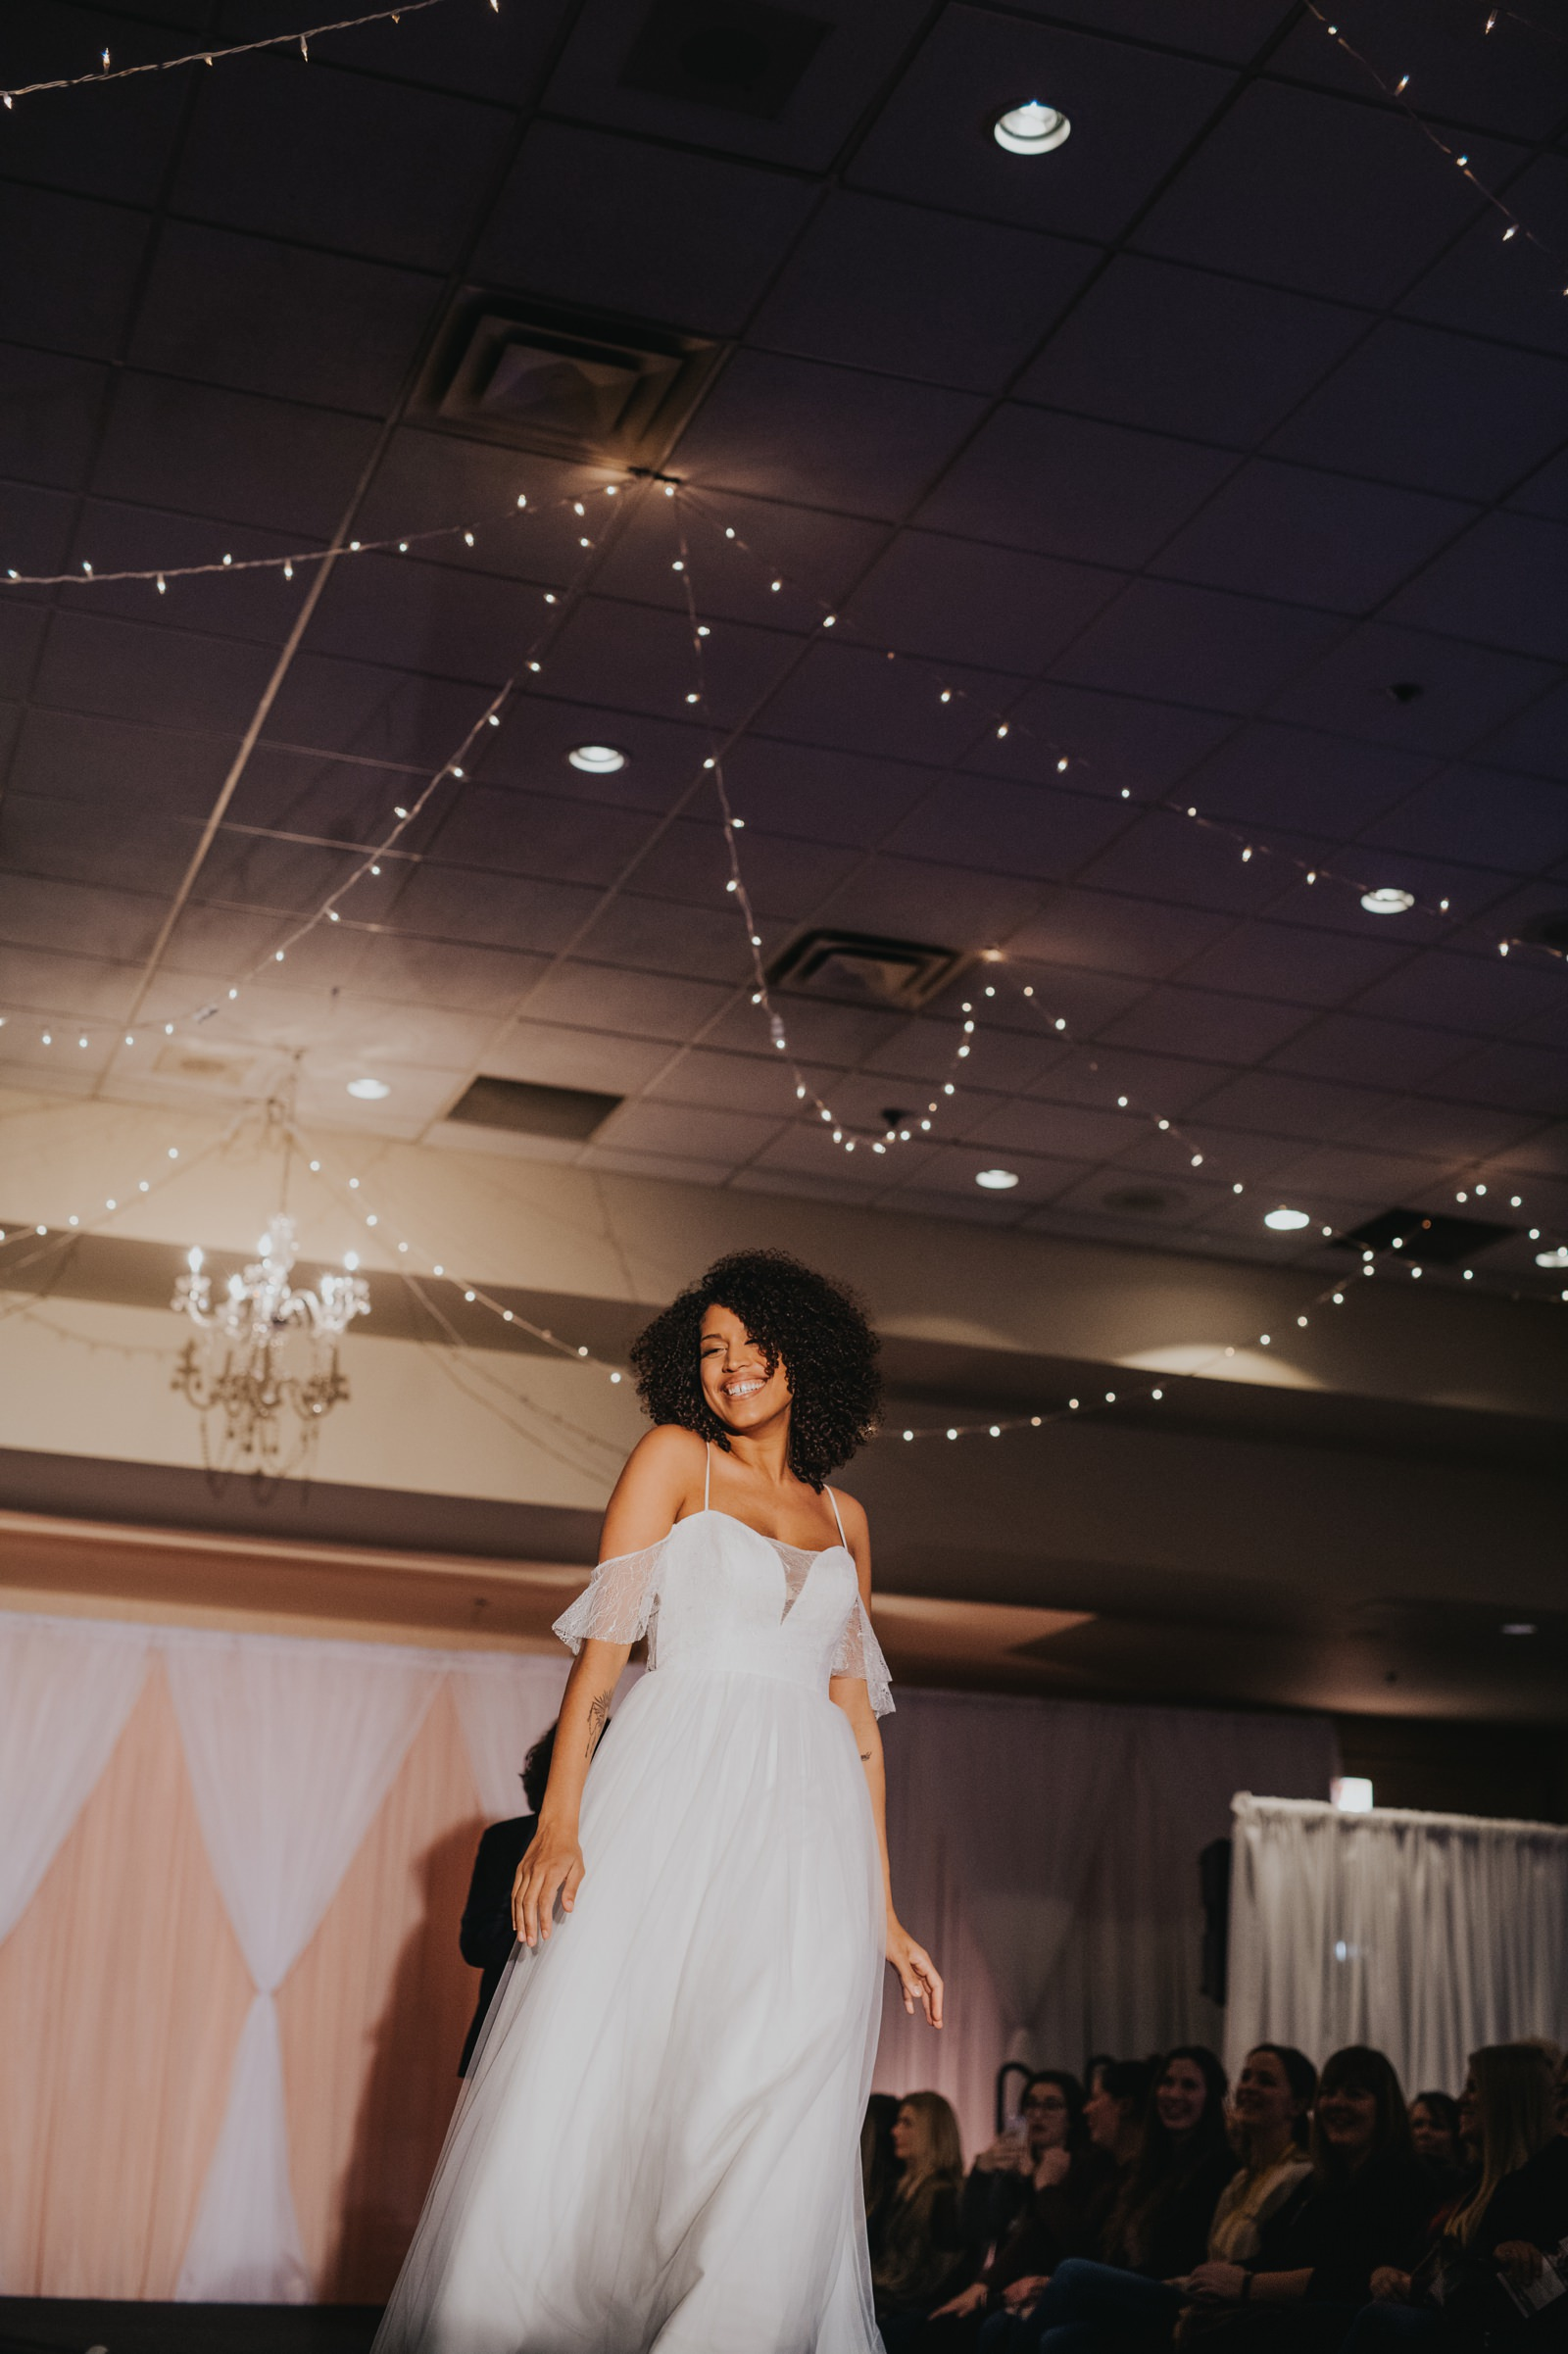 Bridal Expo - Joelsview Photography_0063